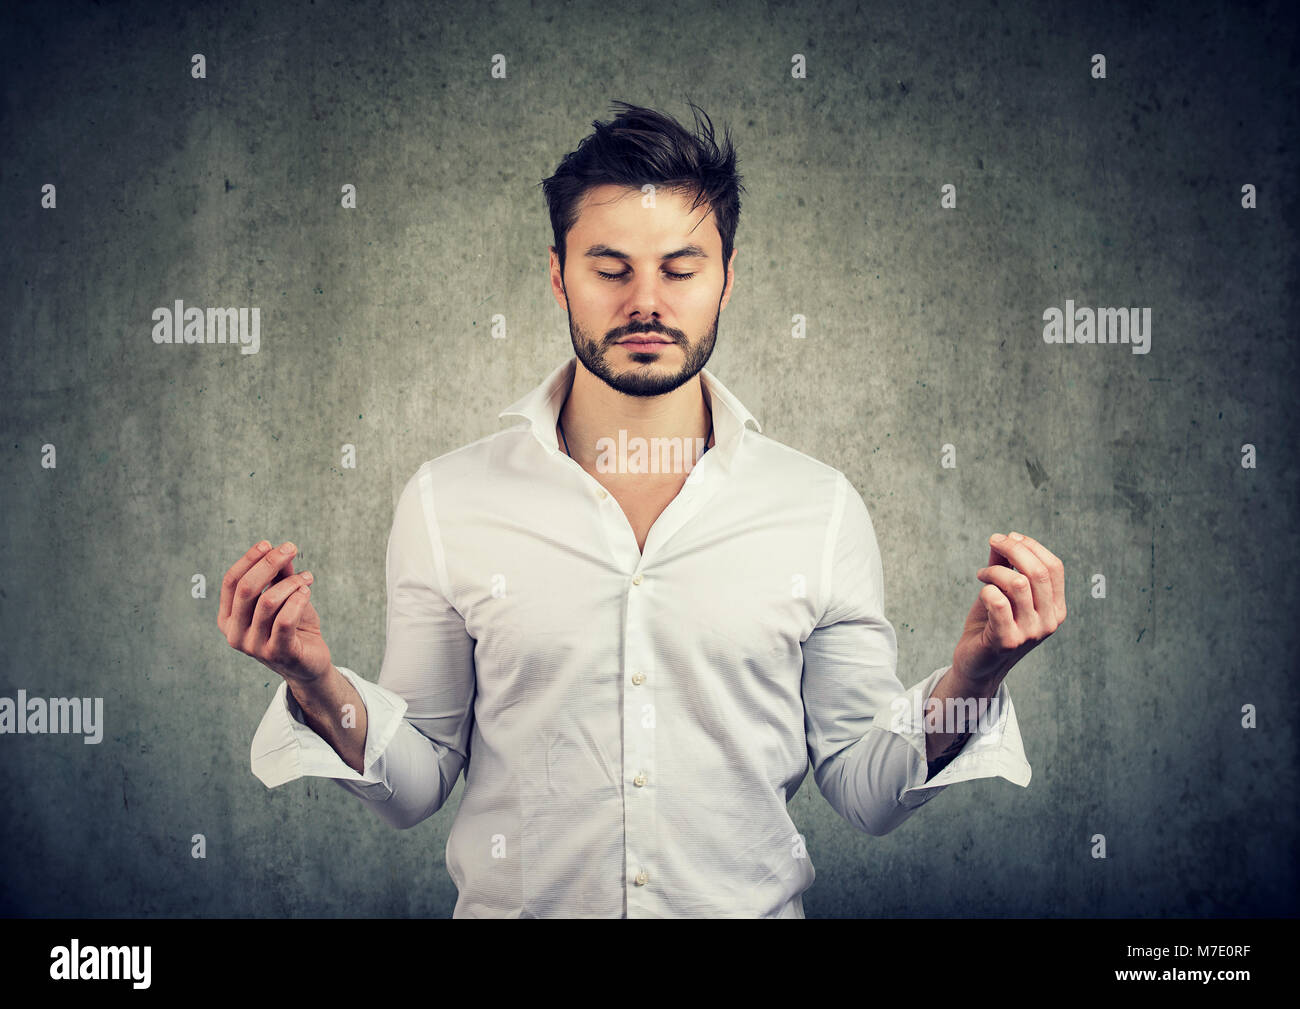 Handsome casual beard man holding hands in meditation and keeping eyes closed. - Stock Image